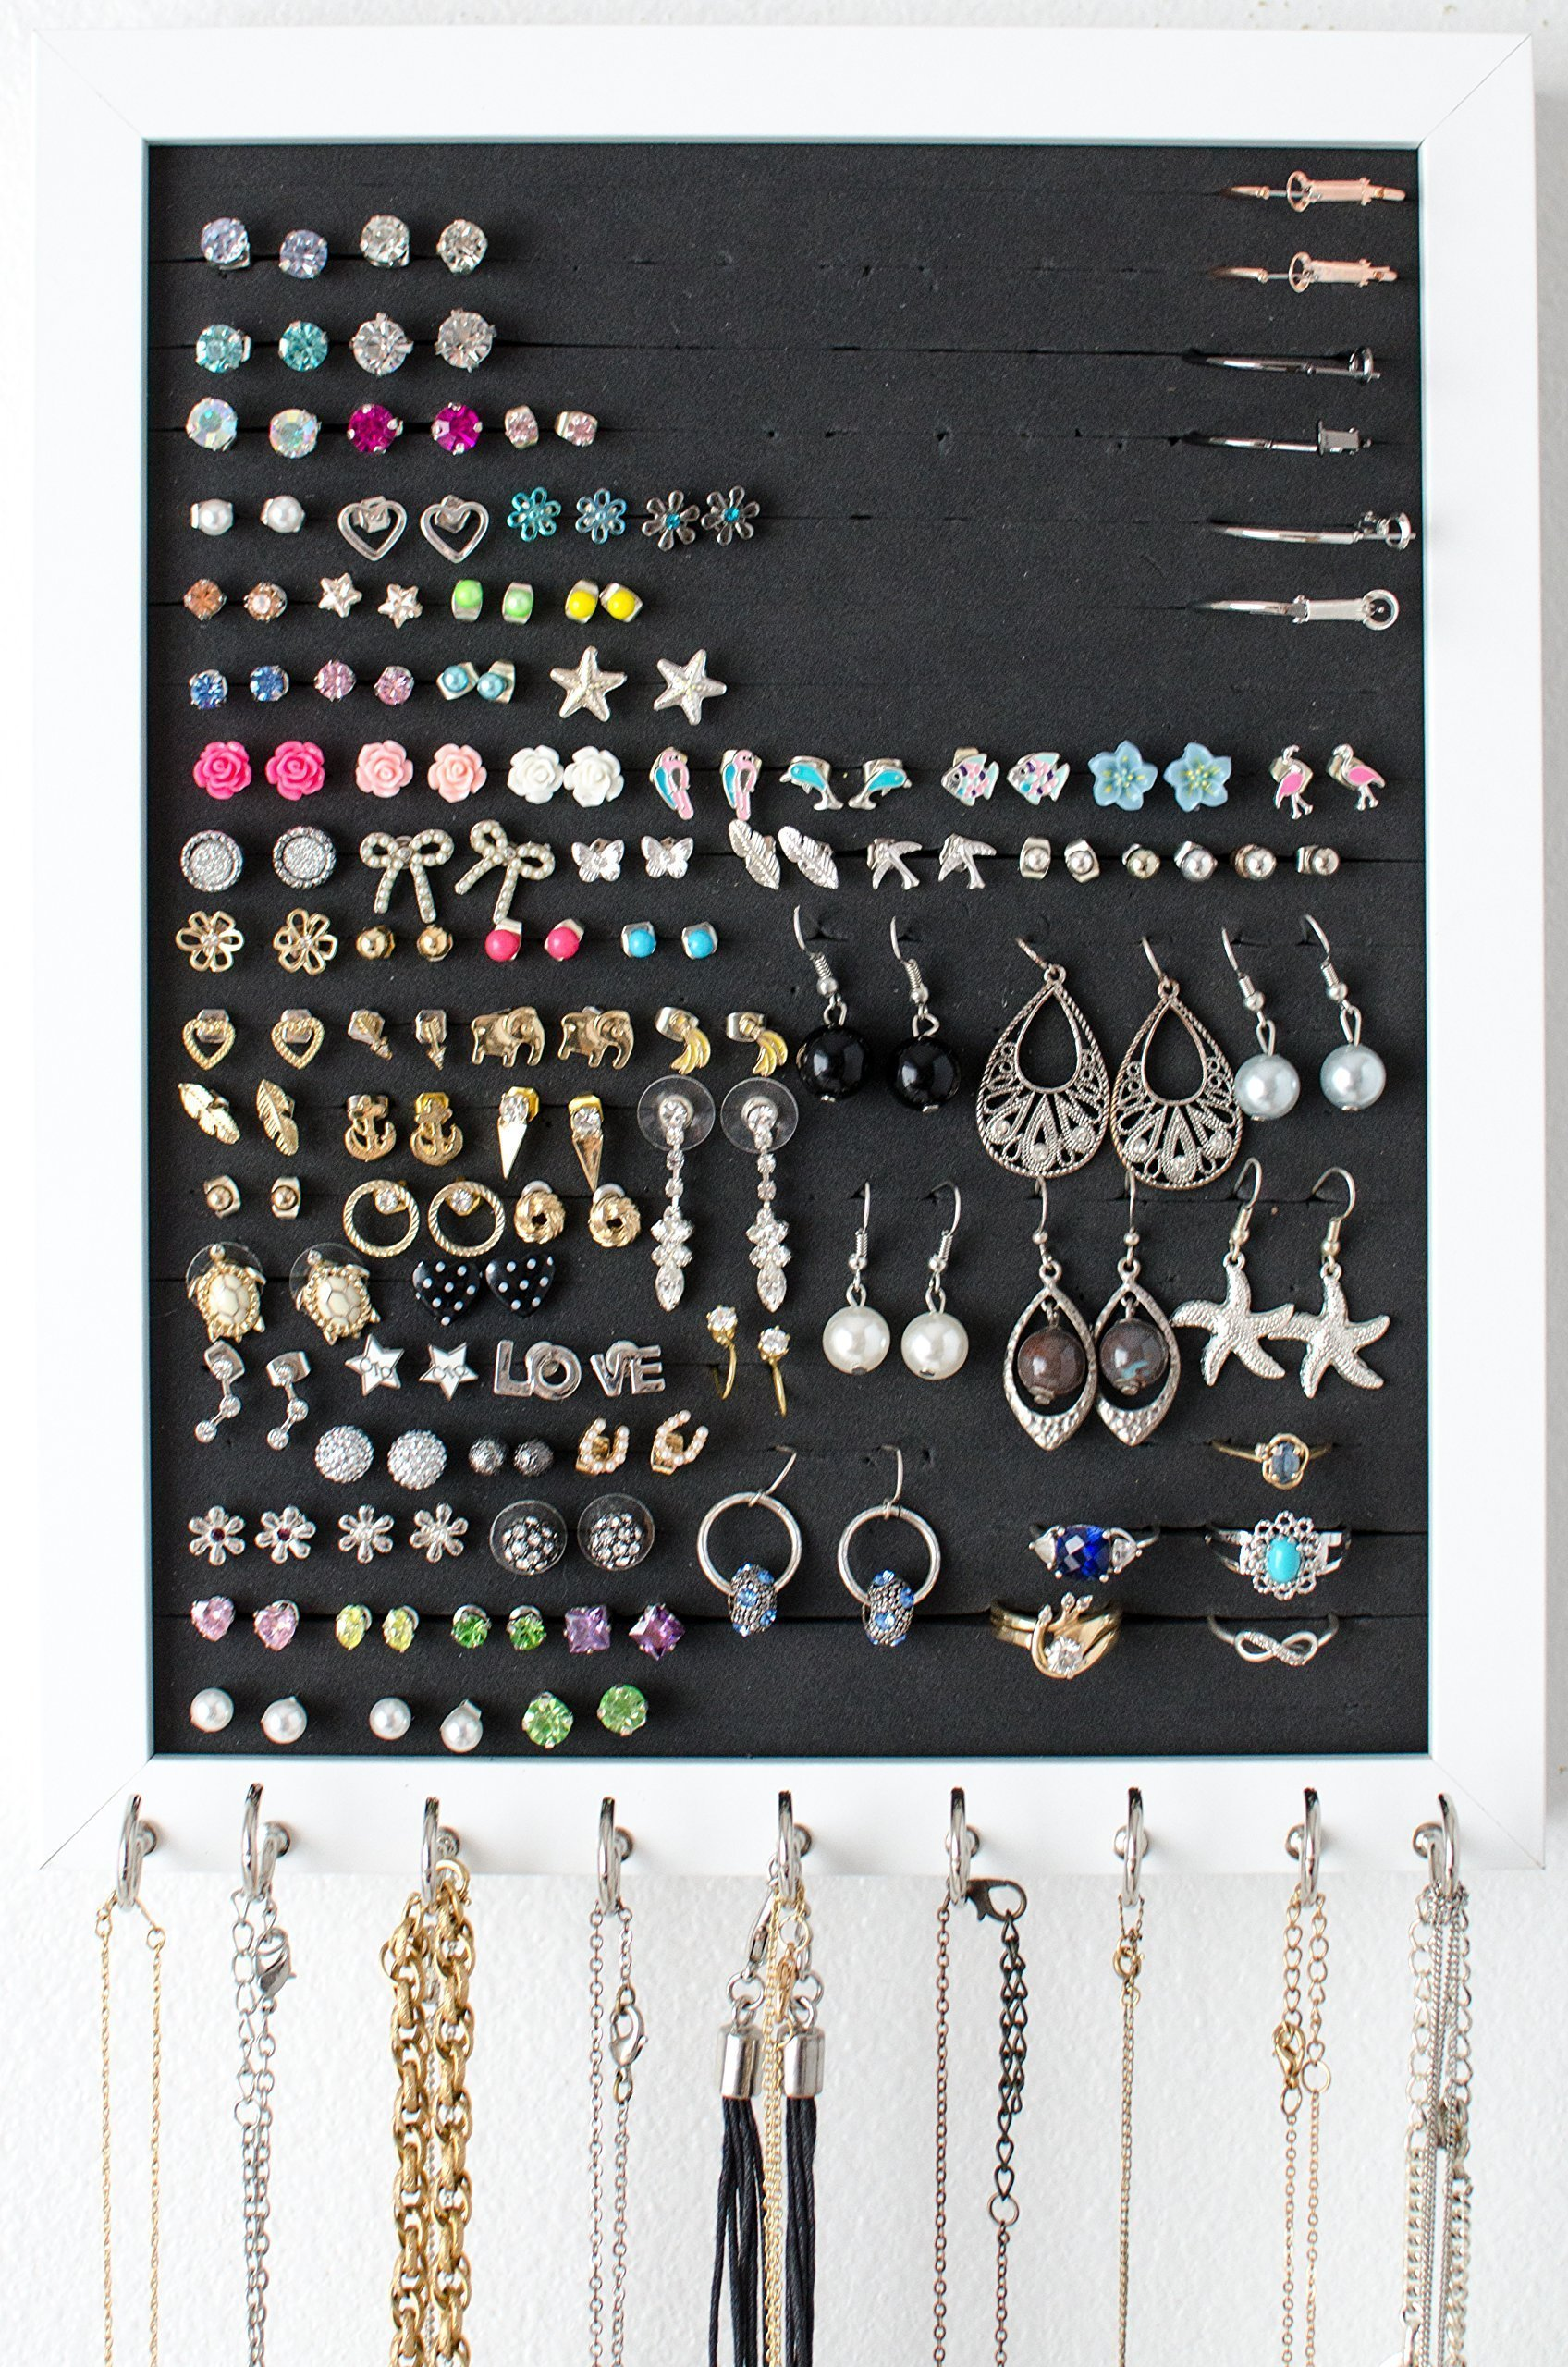 Hanging Jewelry Organizer - 8x10 White Frame - Post or Stud Earring Holder - Necklace Hooks